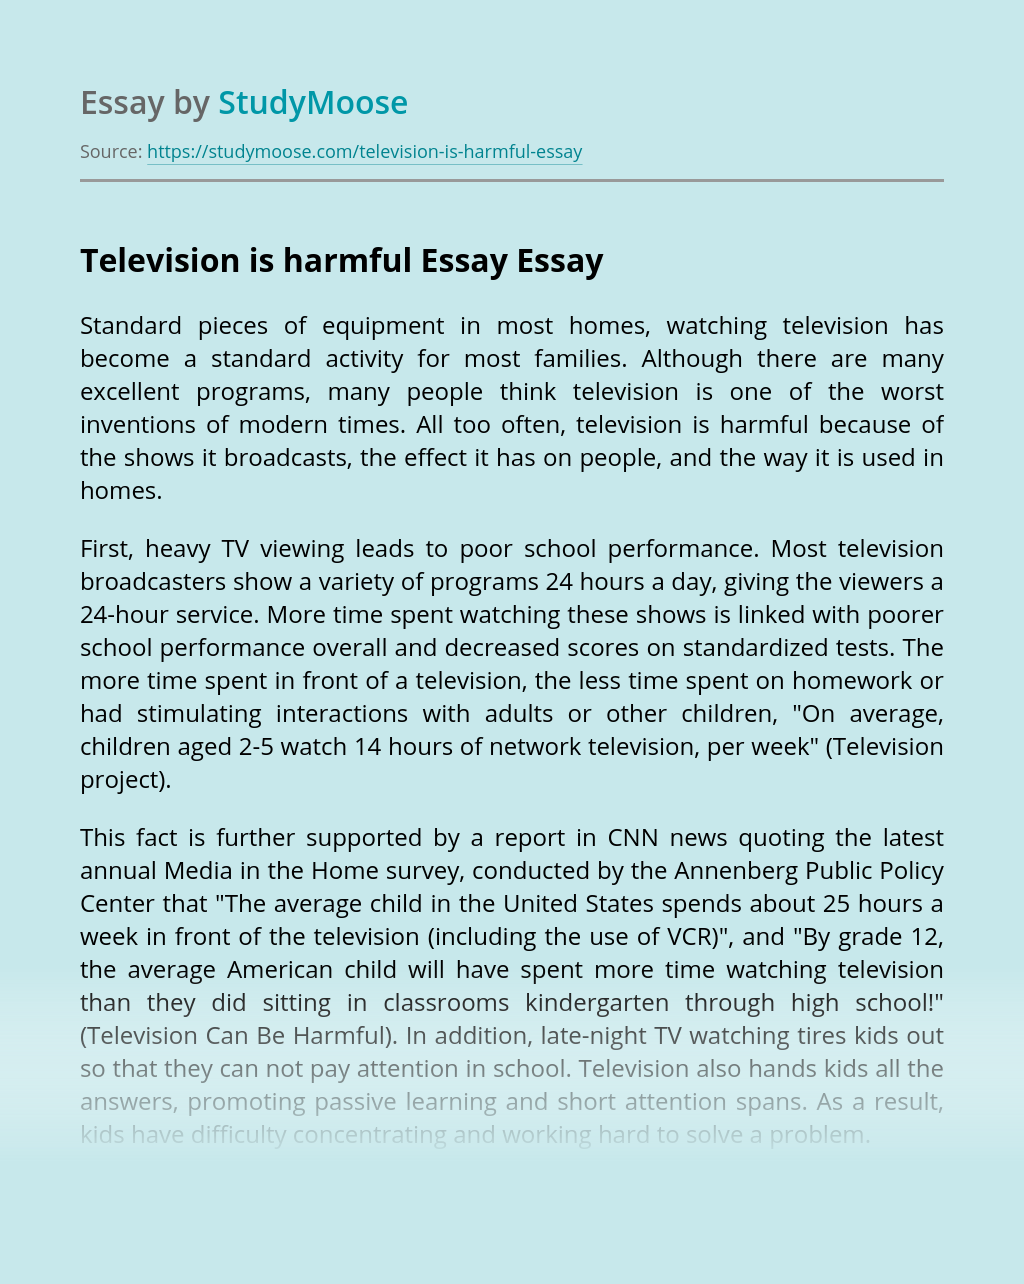 Television is harmful Essay